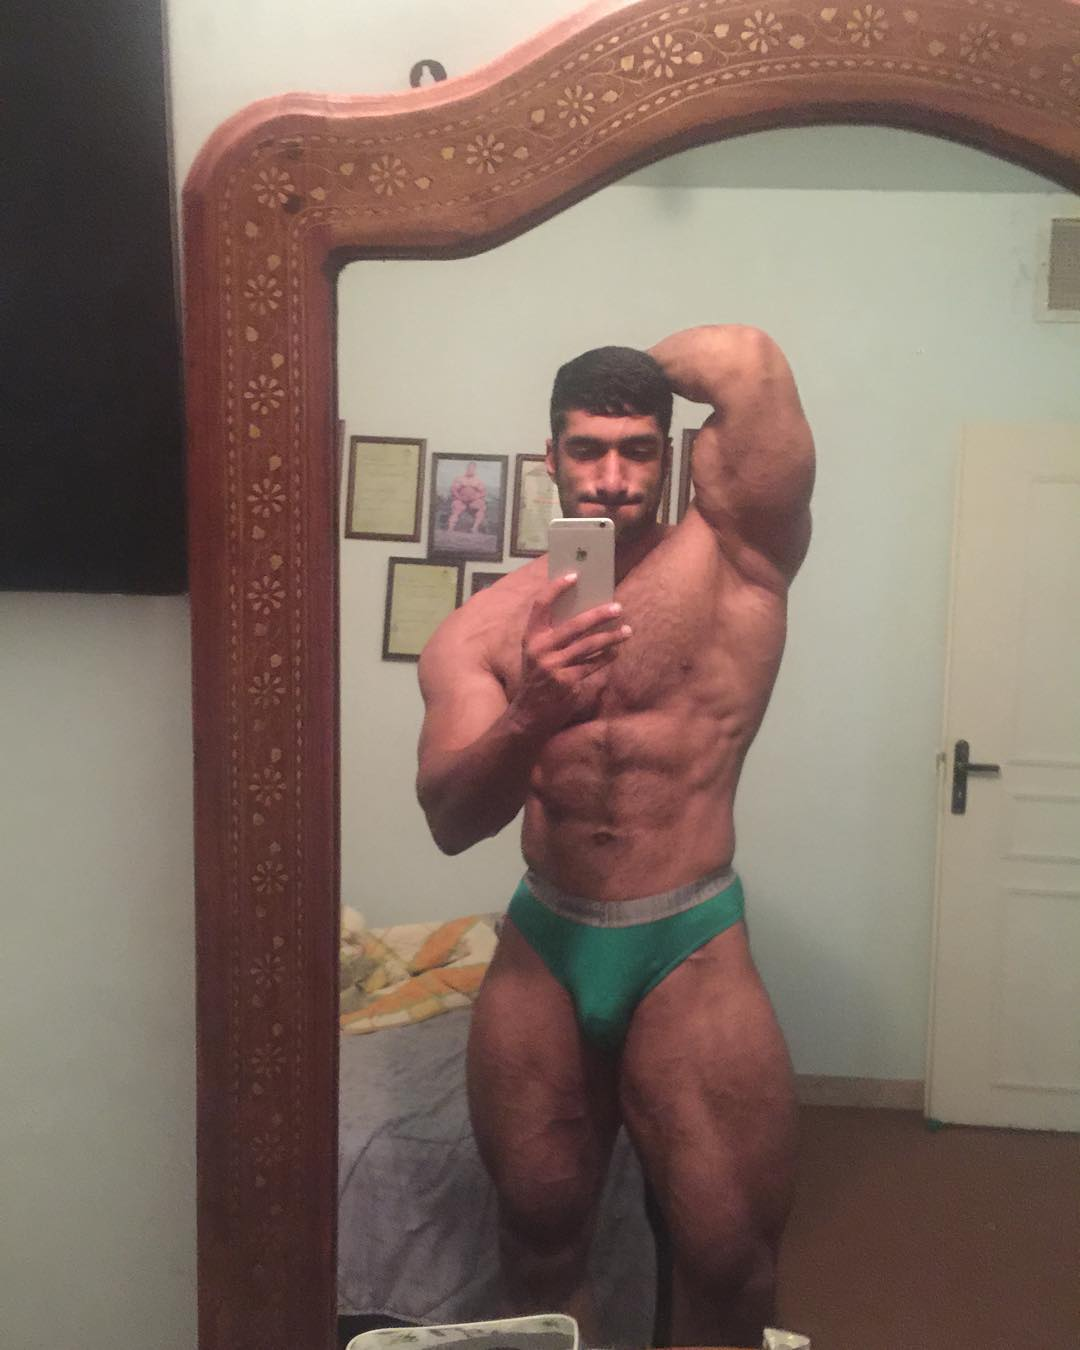 Iranian twinks with big cocks and openly